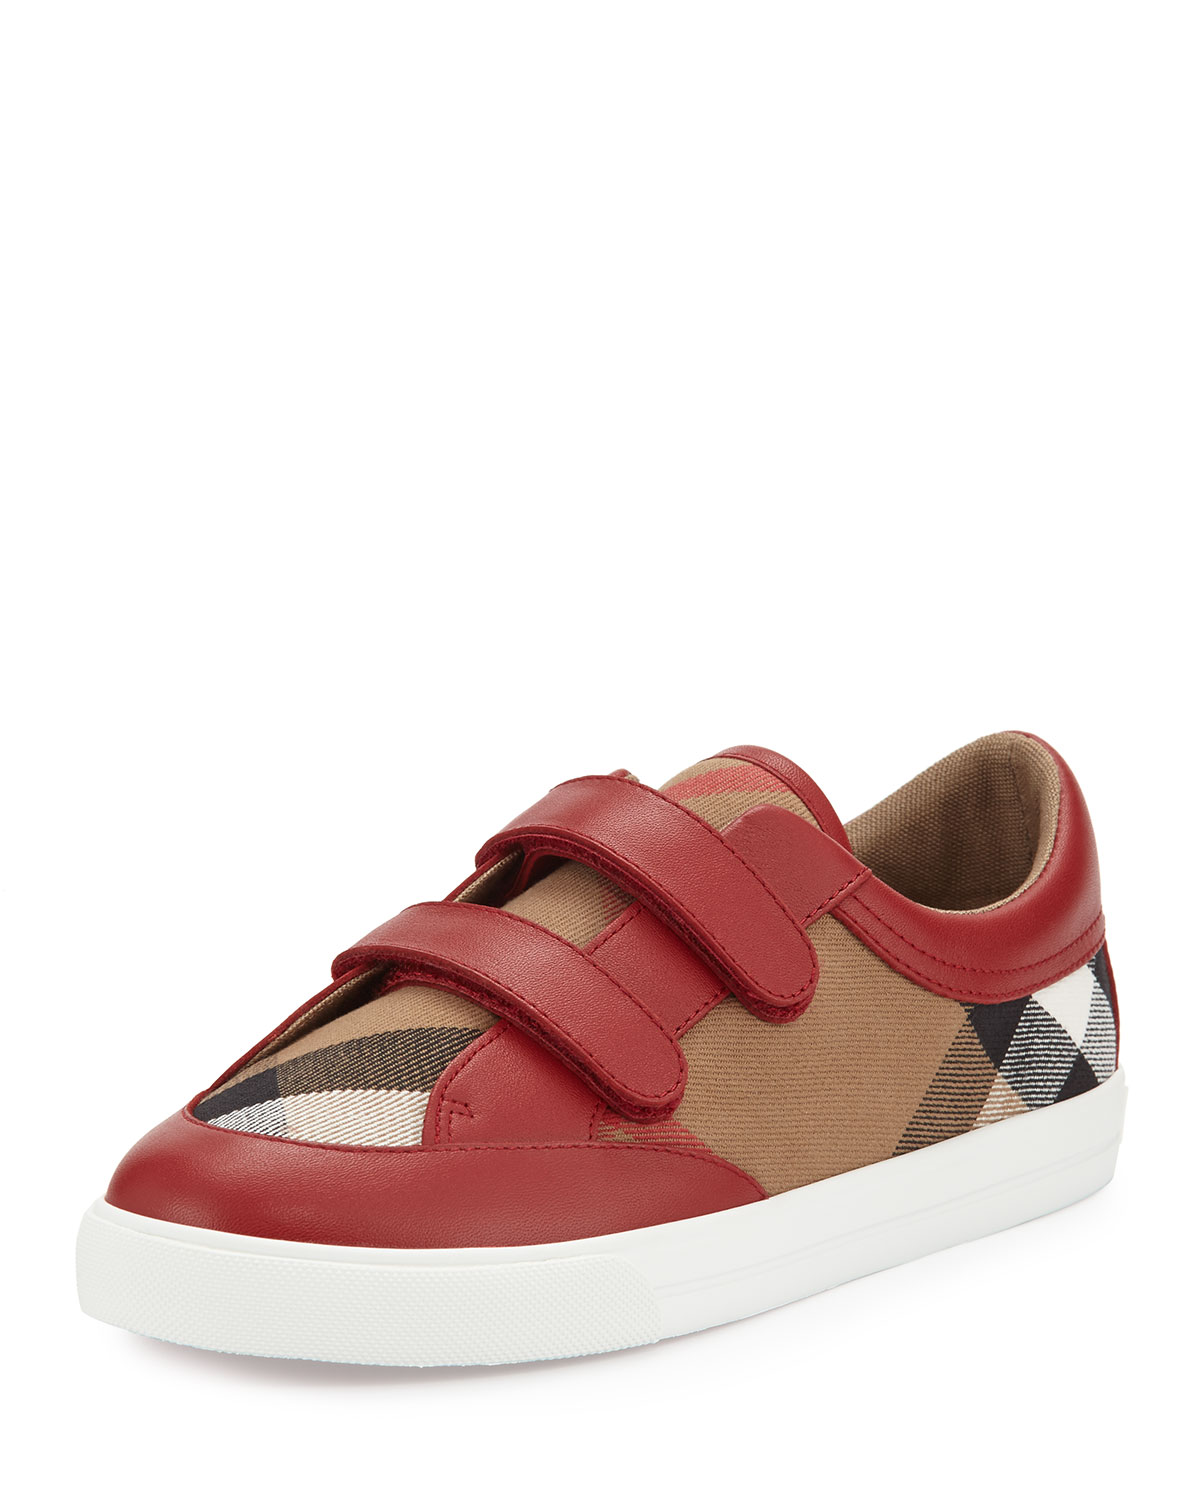 115a47a5edfe Burberry Heacham Check Canvas Sneaker